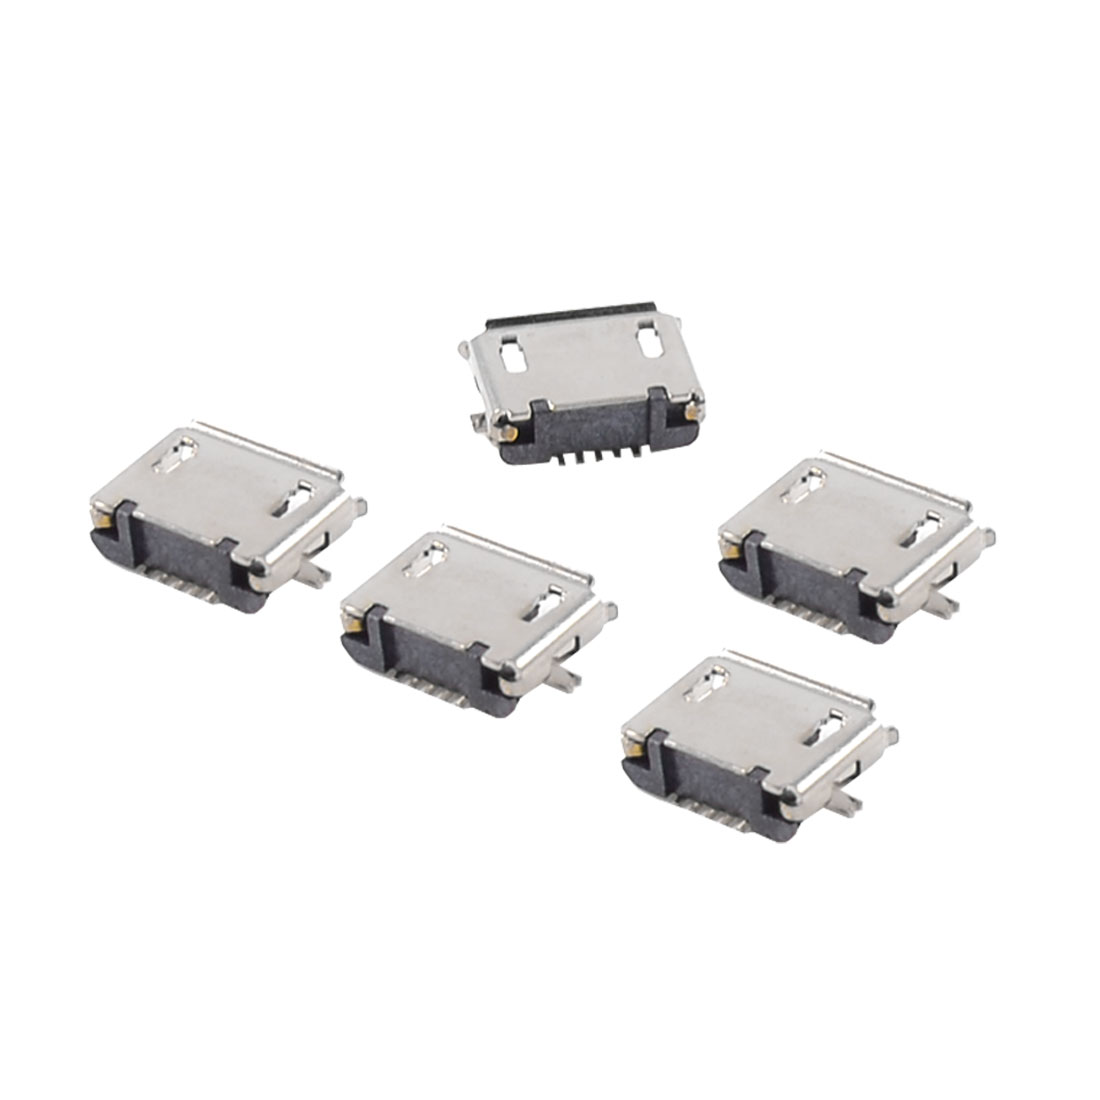 5pcs USB Micro Type-B 5pin Female Jack Connector SMT Socket Surface Mount